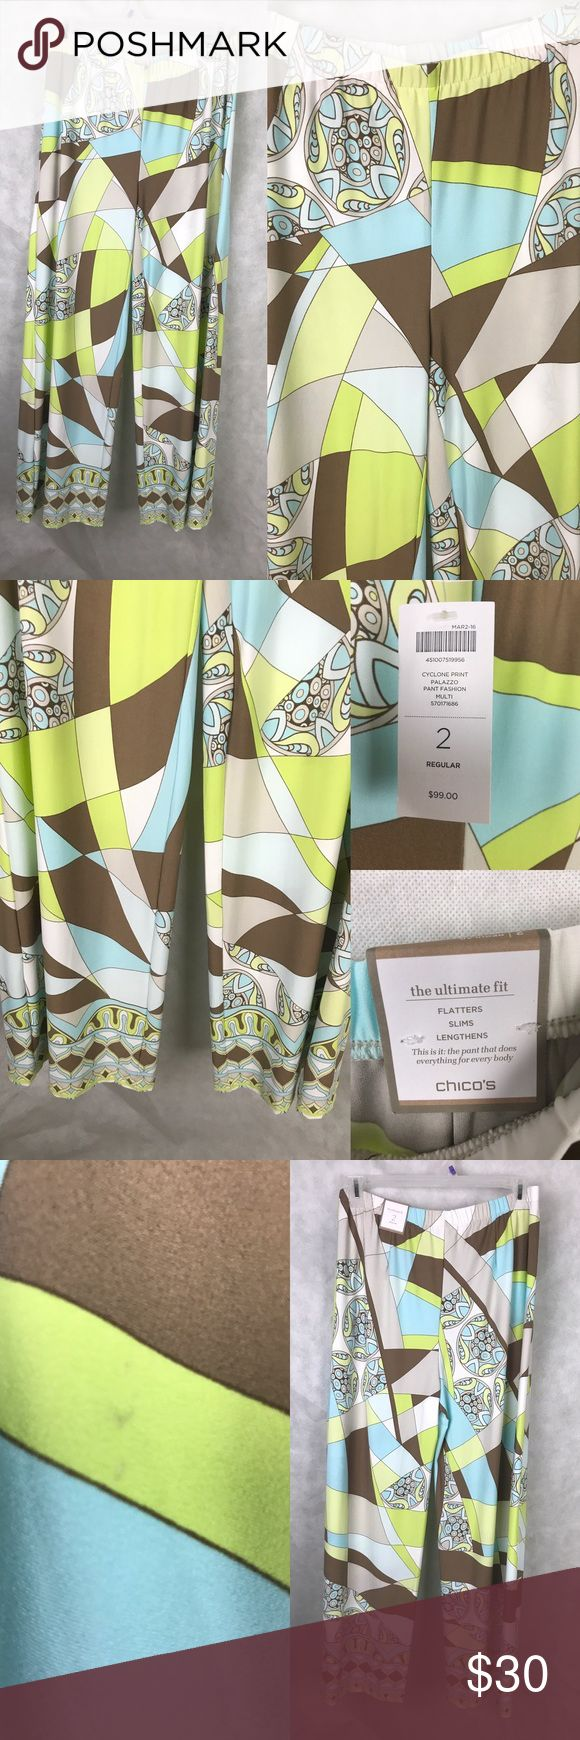 "NWT Chico's 2 Palazzo Pants Wide Leg Sz 12 Large Chico's multi color palazzo pants in cyclone print. Chicos size 2 Regular which is equivalent to 12 or large. Waist: 33"" Hip: 42"" Inseam: 31.5"" Rise: 10"". No holes, rips, pulls. Small mark on rear area (please see picture). From non smoking home. Chico's Pants"